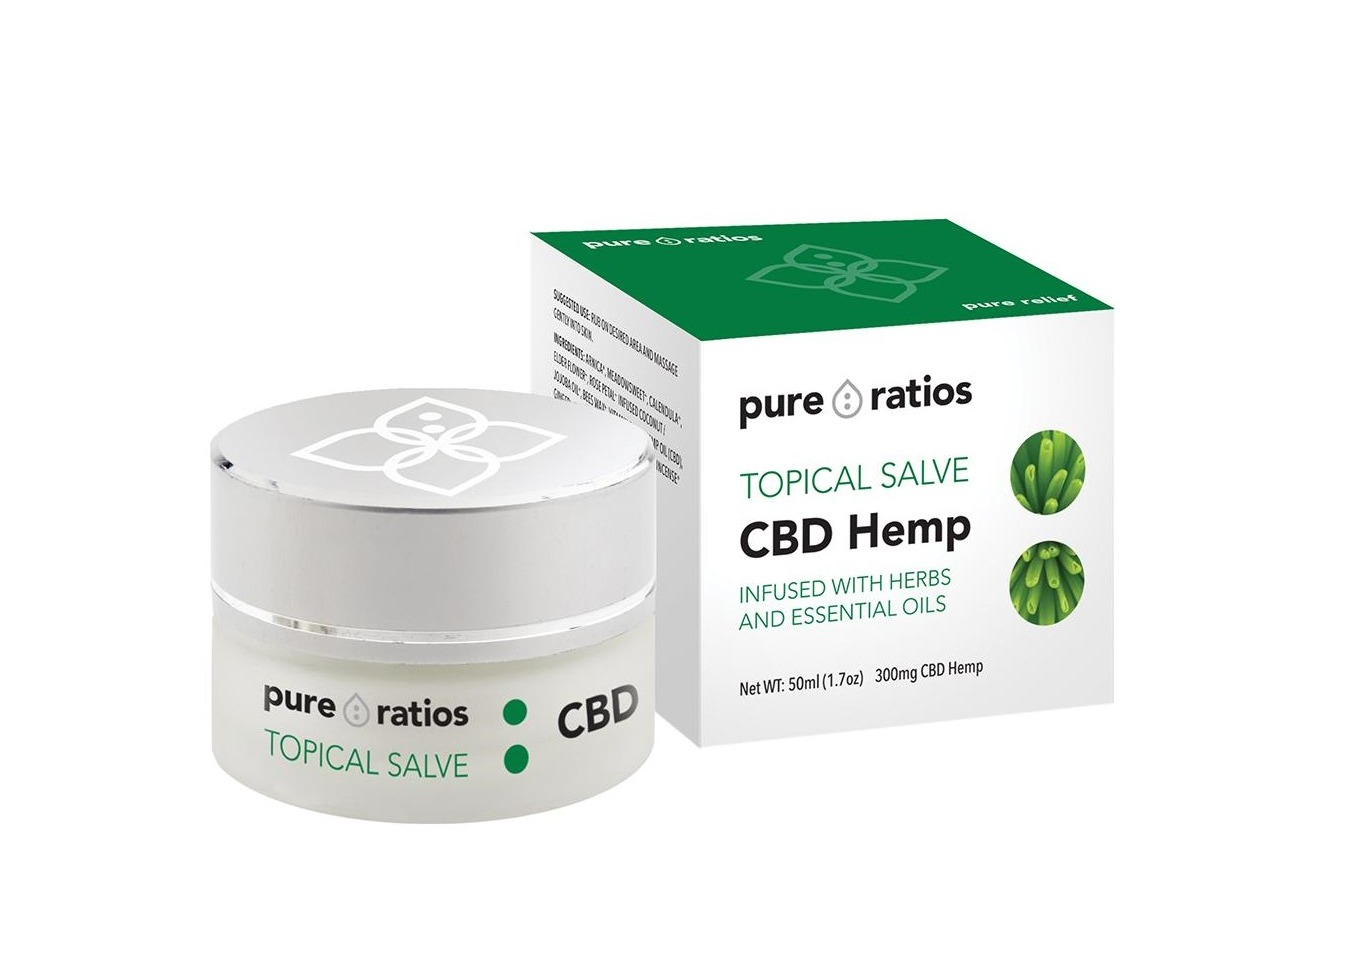 CBD Topical Salve on Greenery Map